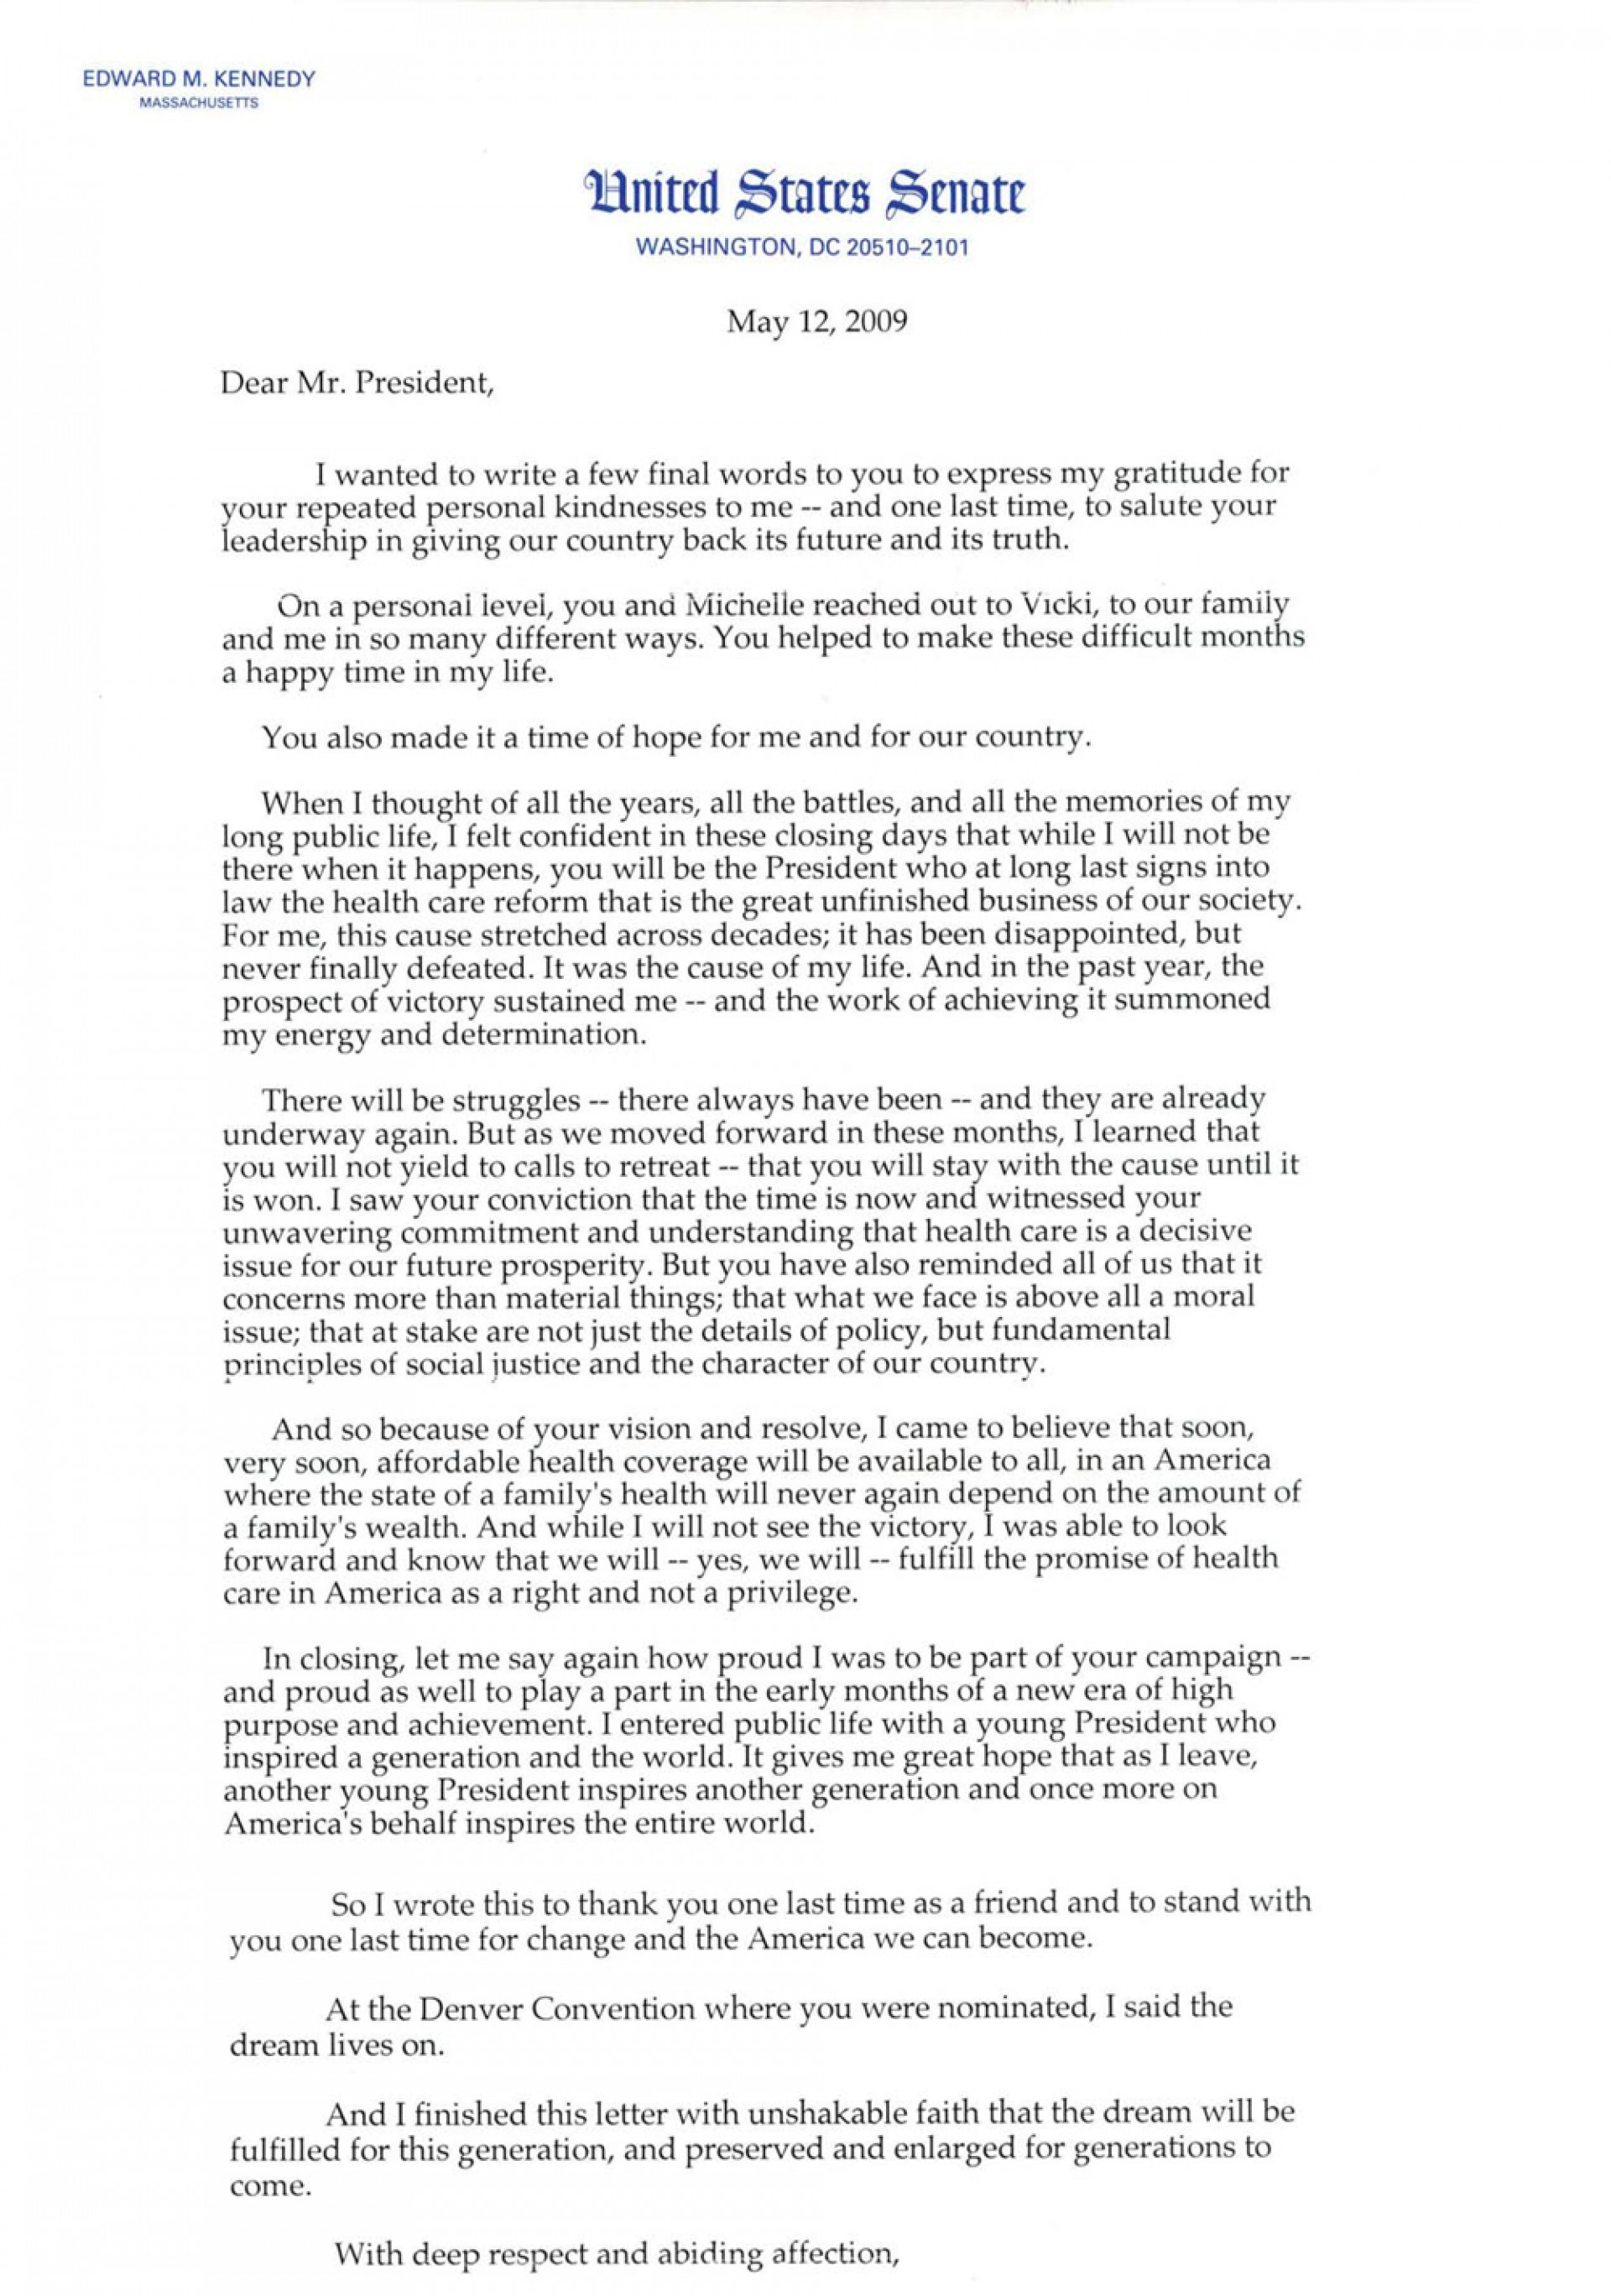 003 Health Care Essay Example Ted Kennedy Healthcare Letter Impressive Universal Introduction Assignment Cost Access And Quality In English 1920